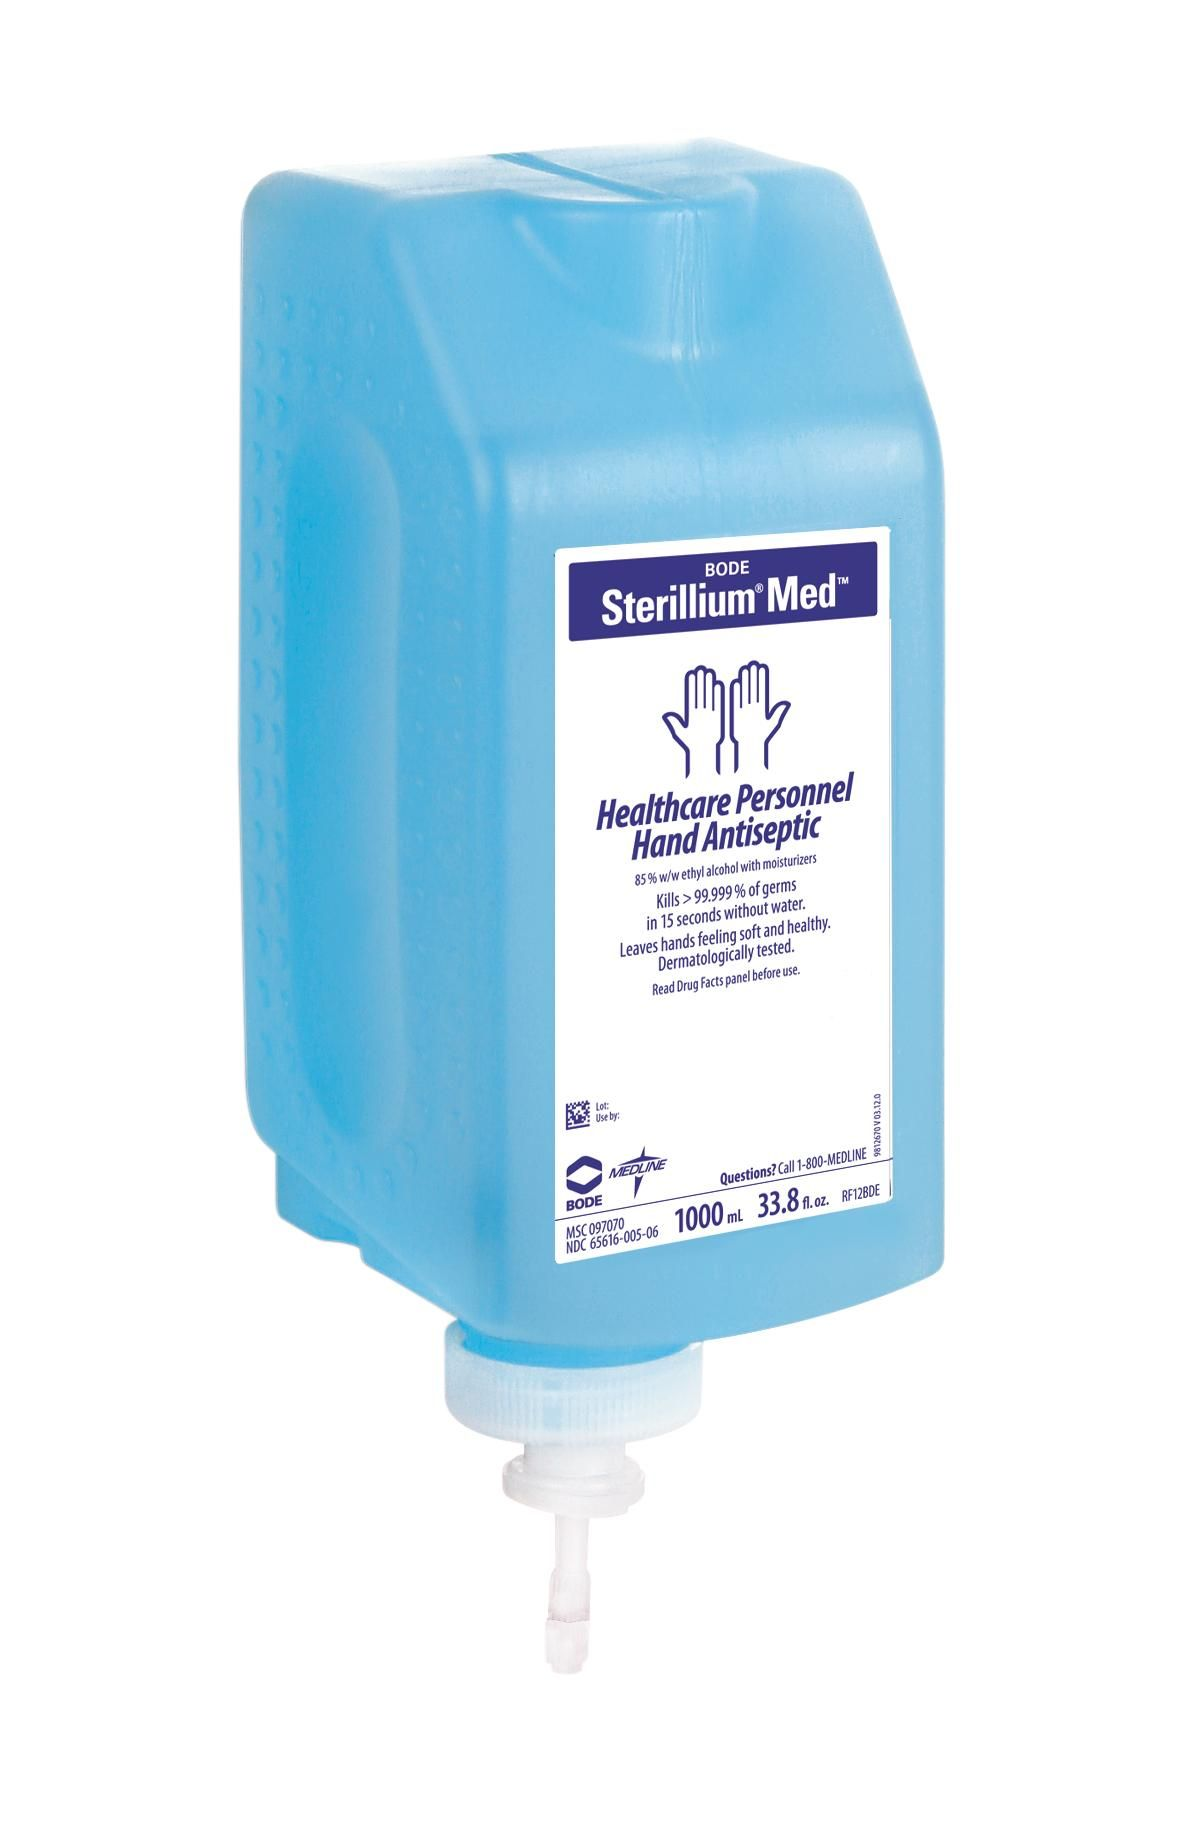 Sterillium Med Liquid Hand Sanitizer Medline Industries Inc